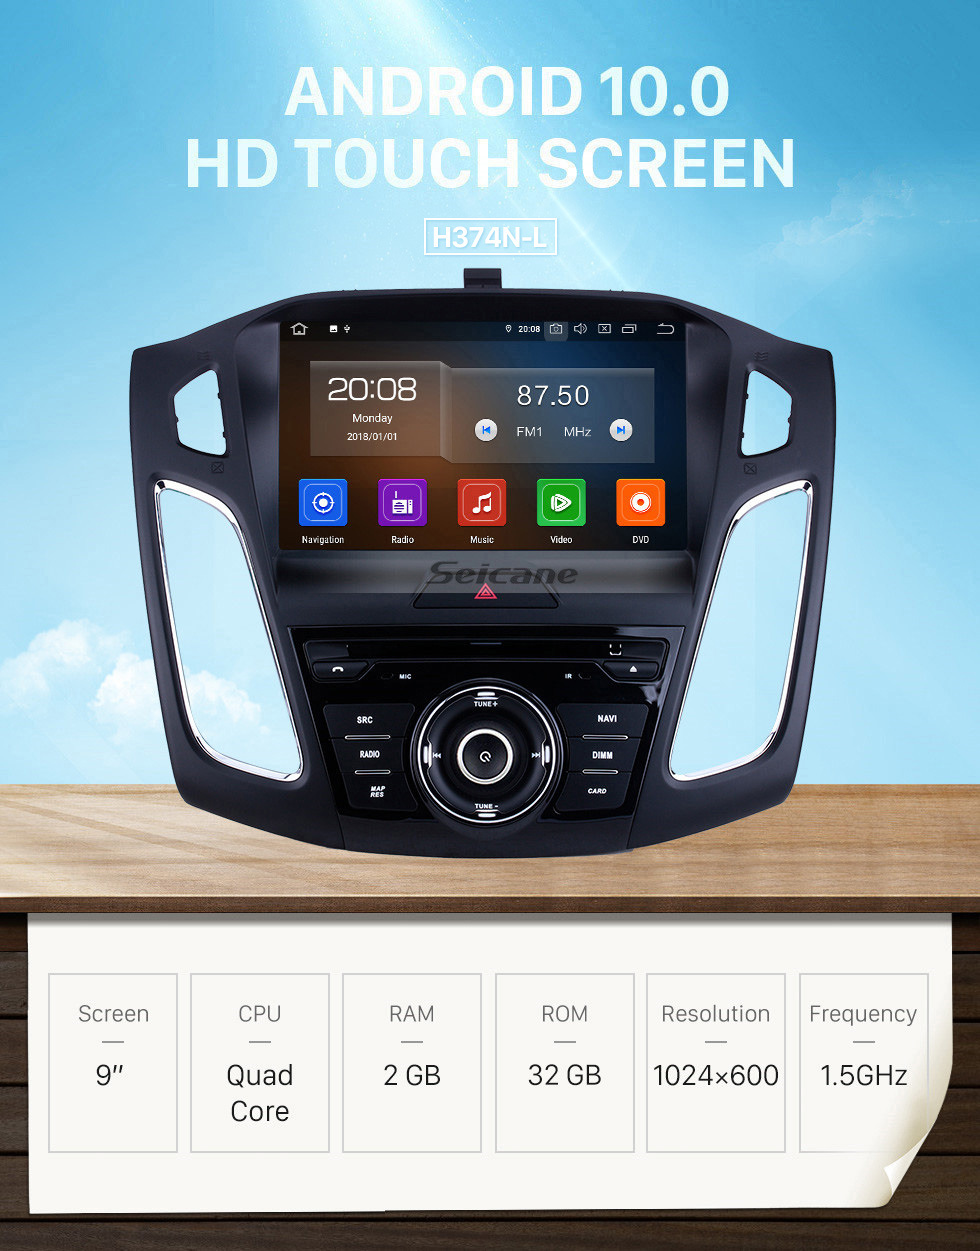 Seicane Android 10.0 For 2015 Ford Focus Radio 9 inch GPS Navigation System Bluetooth HD Touchscreen Carplay support Steering Wheel Control DSP